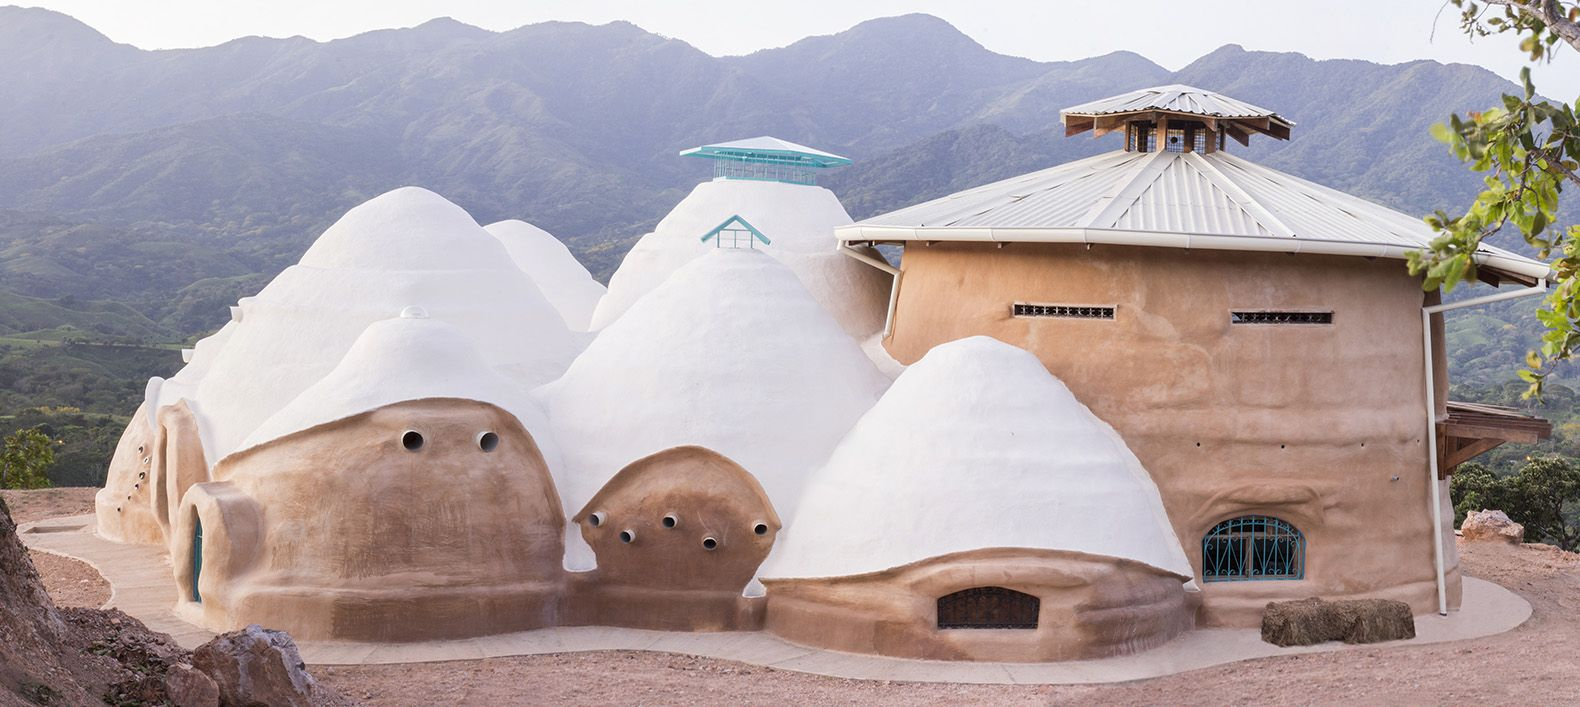 Bioclimatic Dome Home In Costa Rica Built With Nader Khalilis Earth Bag Technique